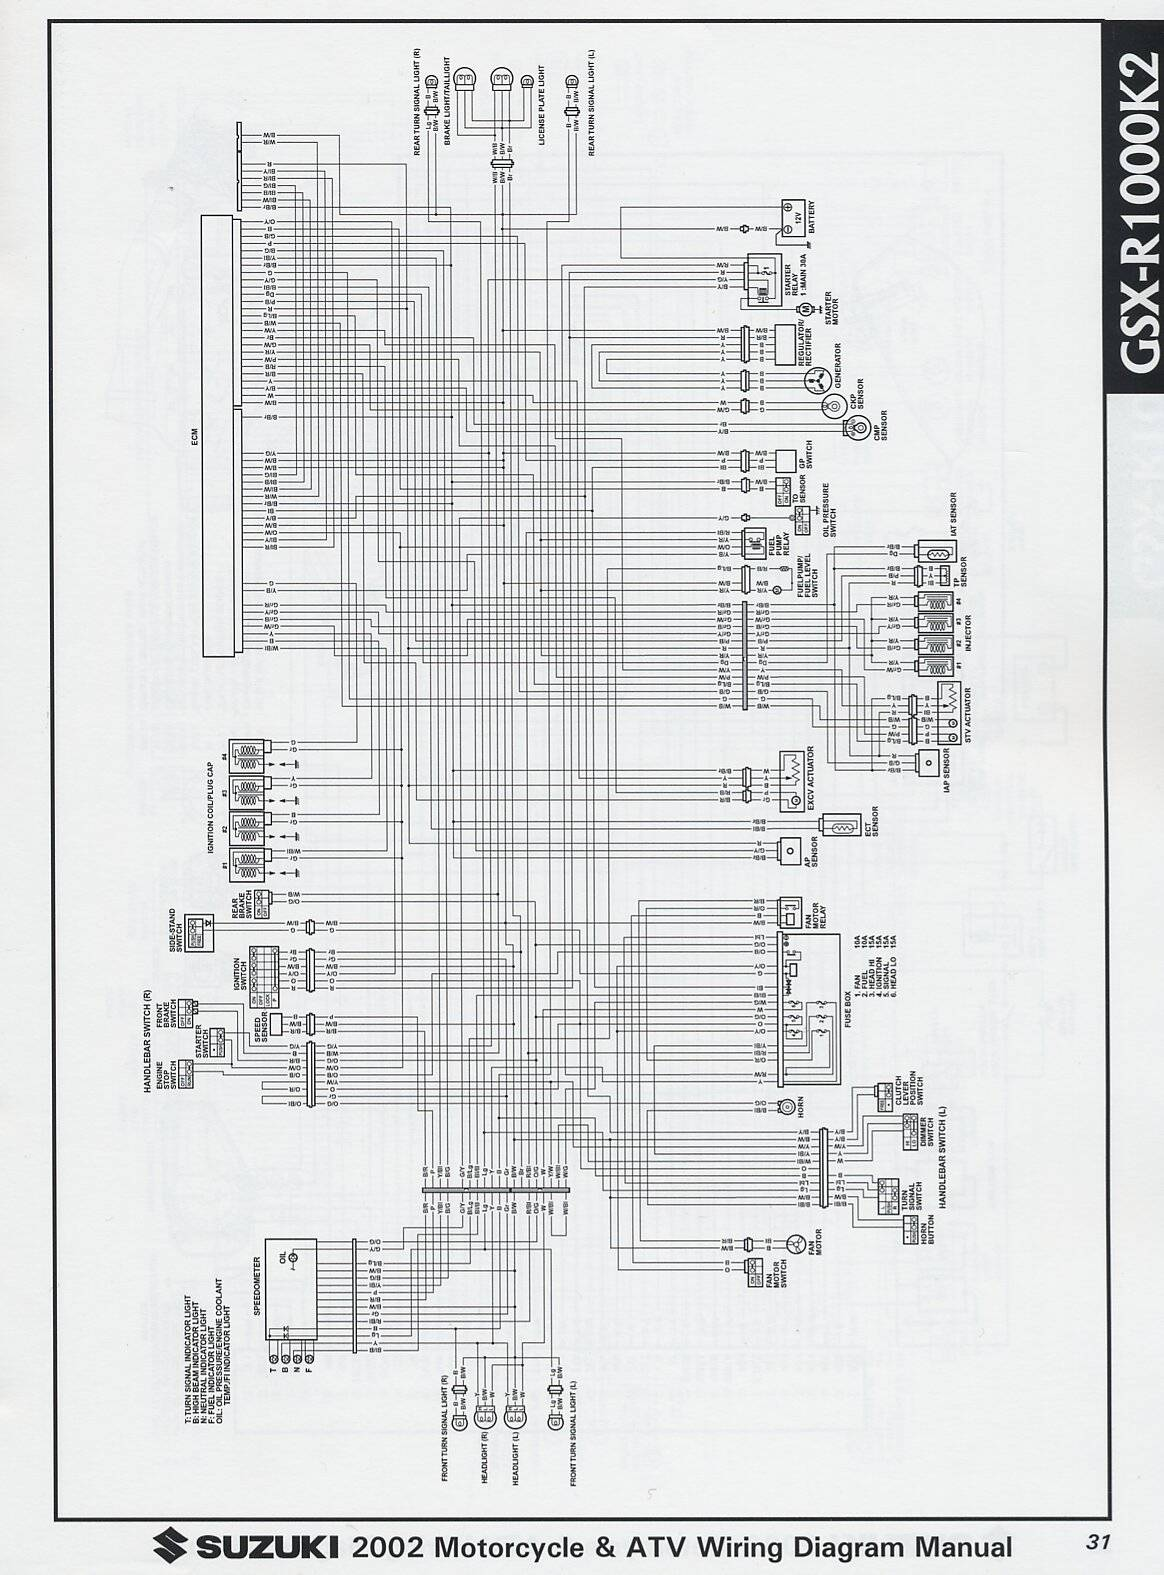 2001 suzuki gsxr wiring diagram enthusiast wiring diagrams u2022 rh rasalibre co